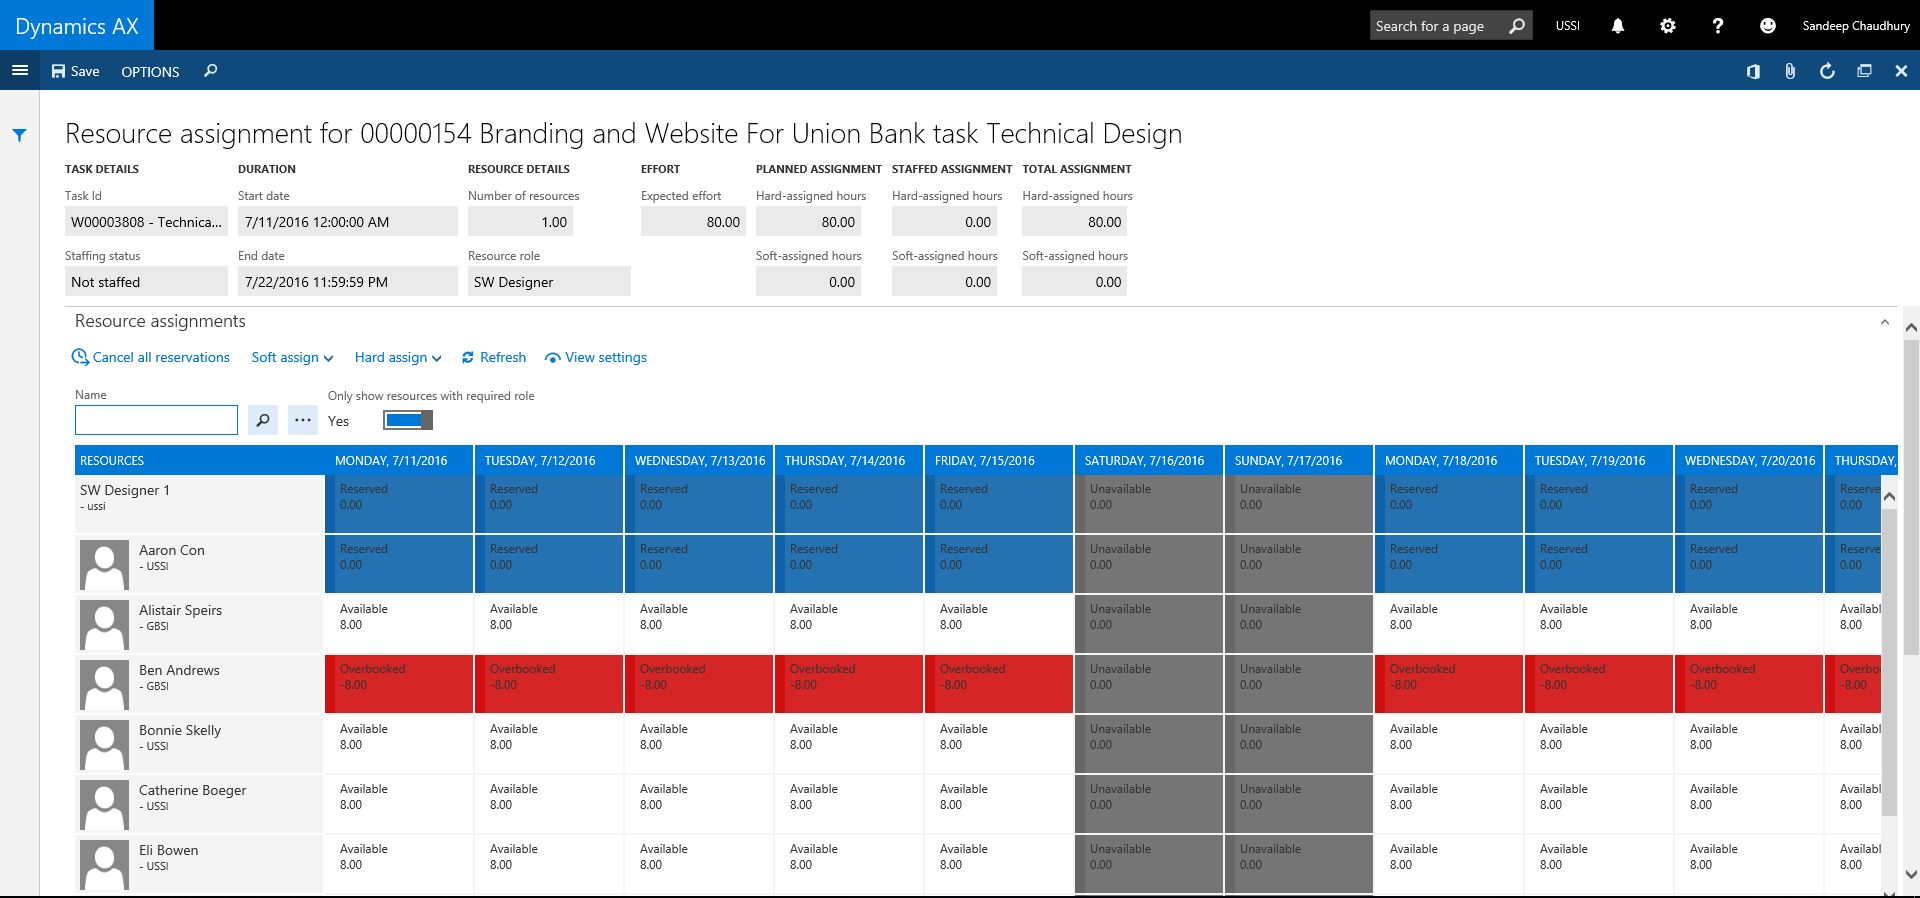 View resource assignments at a project task level with AXIO for Dynamics AX